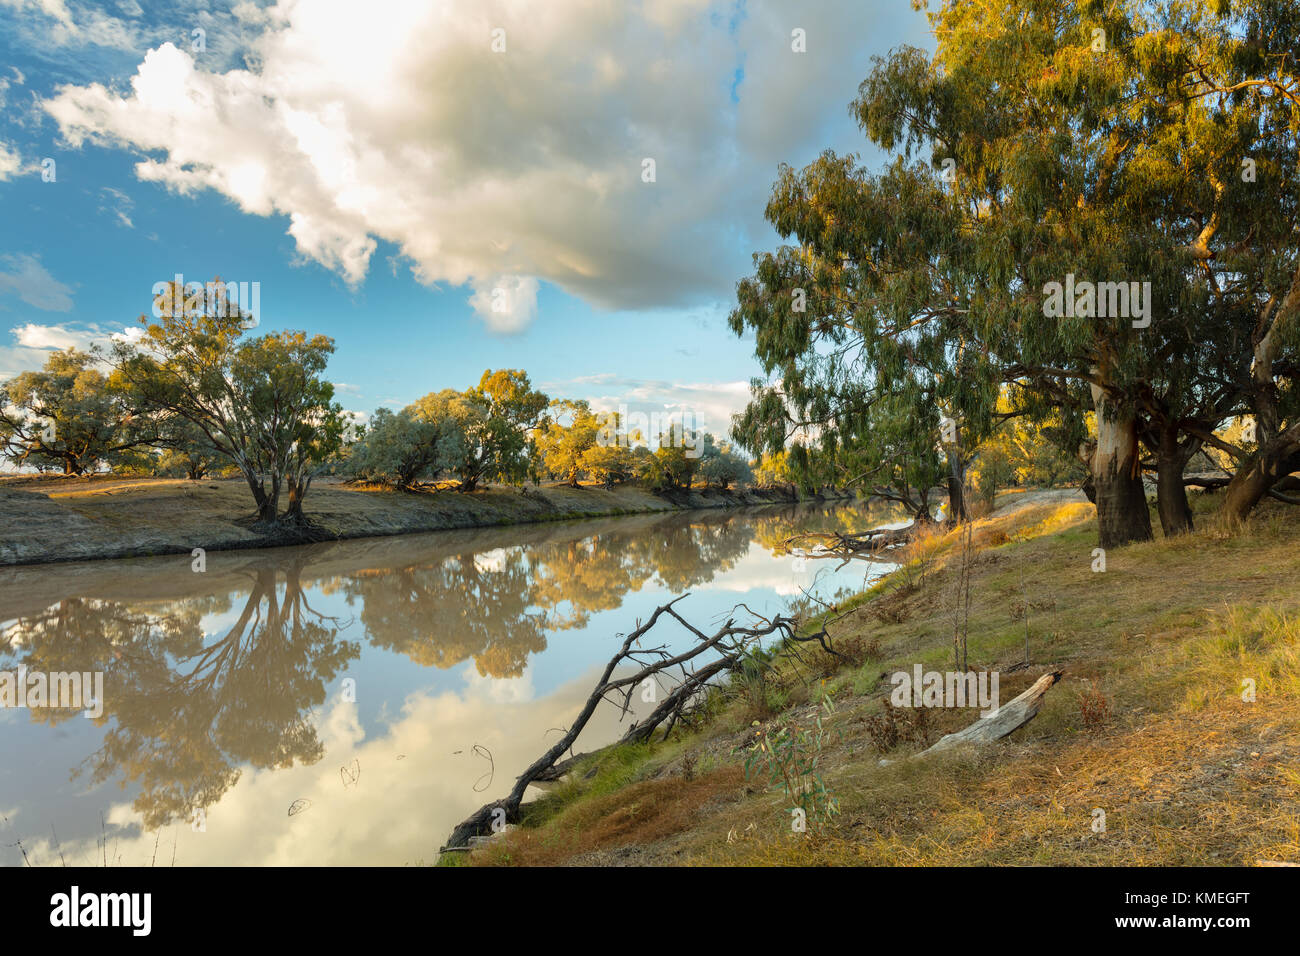 Darling River at sunrise near Bourke in outback north western New South Wales in Australia. - Stock Image